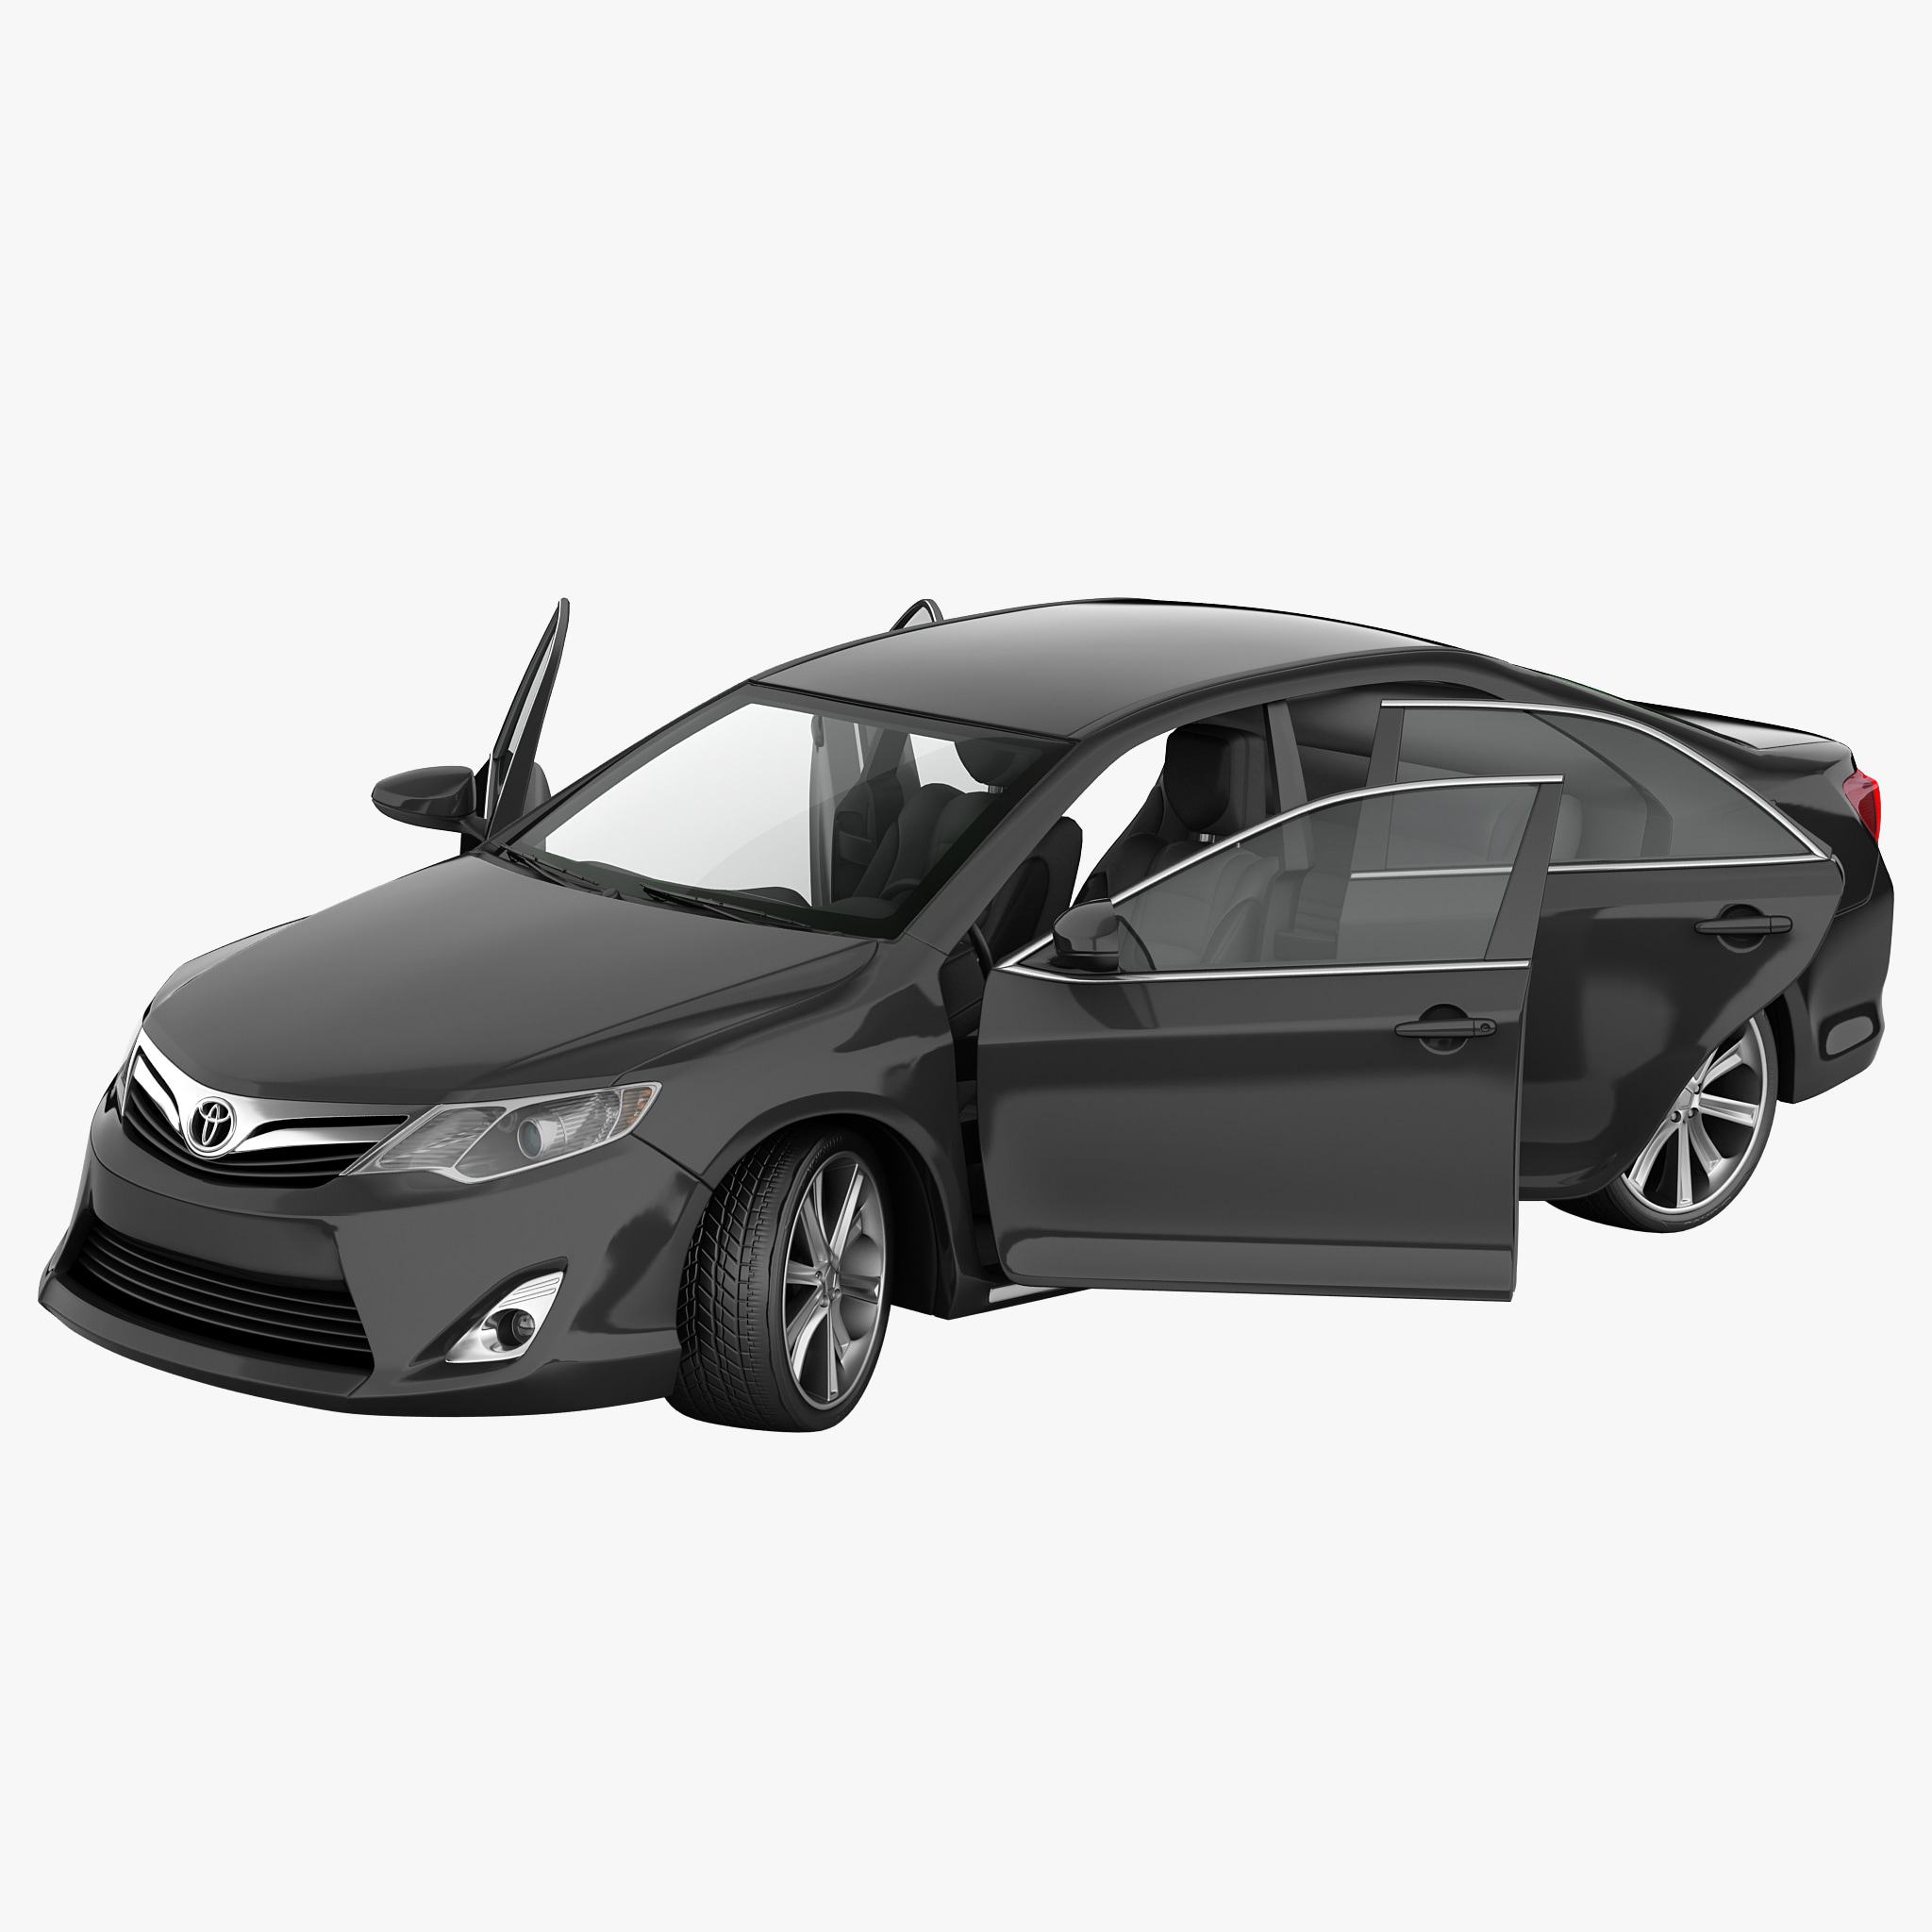 Toyota Camry 2012 Rigged_4.jpg